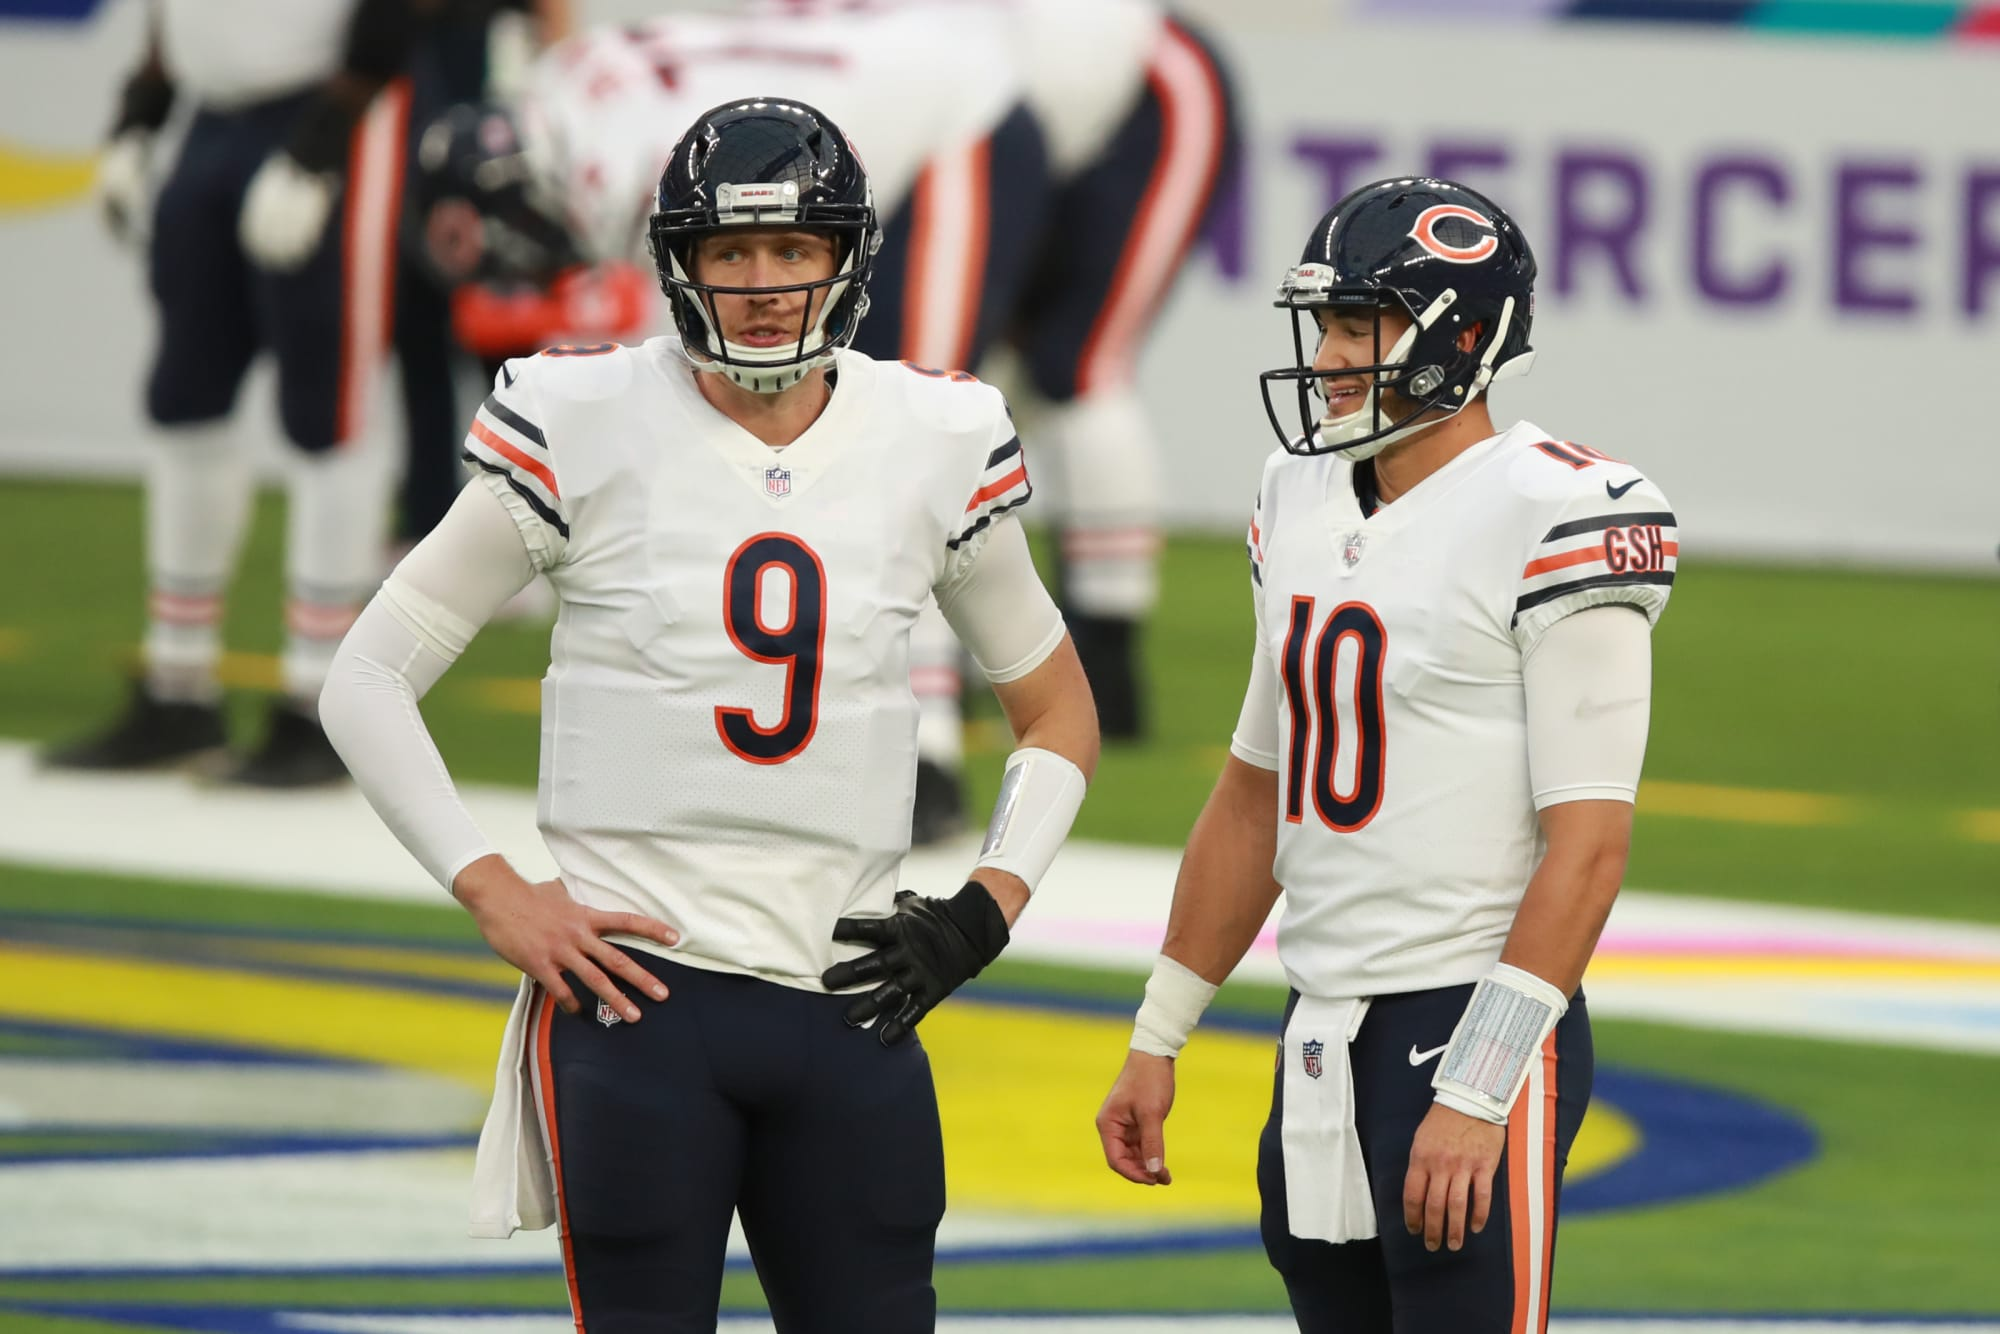 The Bears basically need to post a shutout to beat the Packers